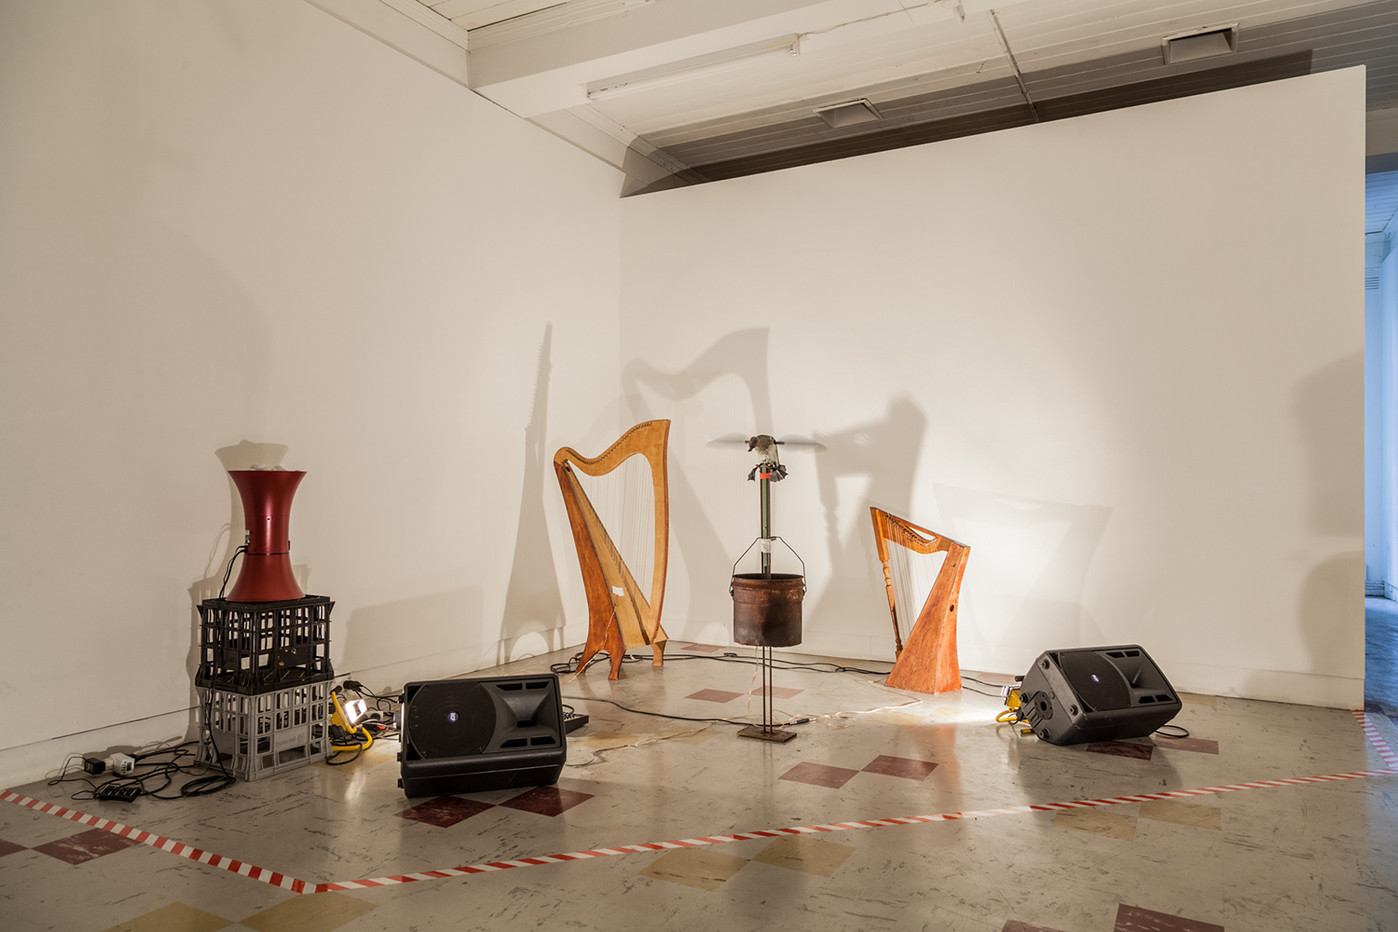 Four minutes and thirty-three seconds in cat years, TCB Art inc. Photo by Christo Crocker